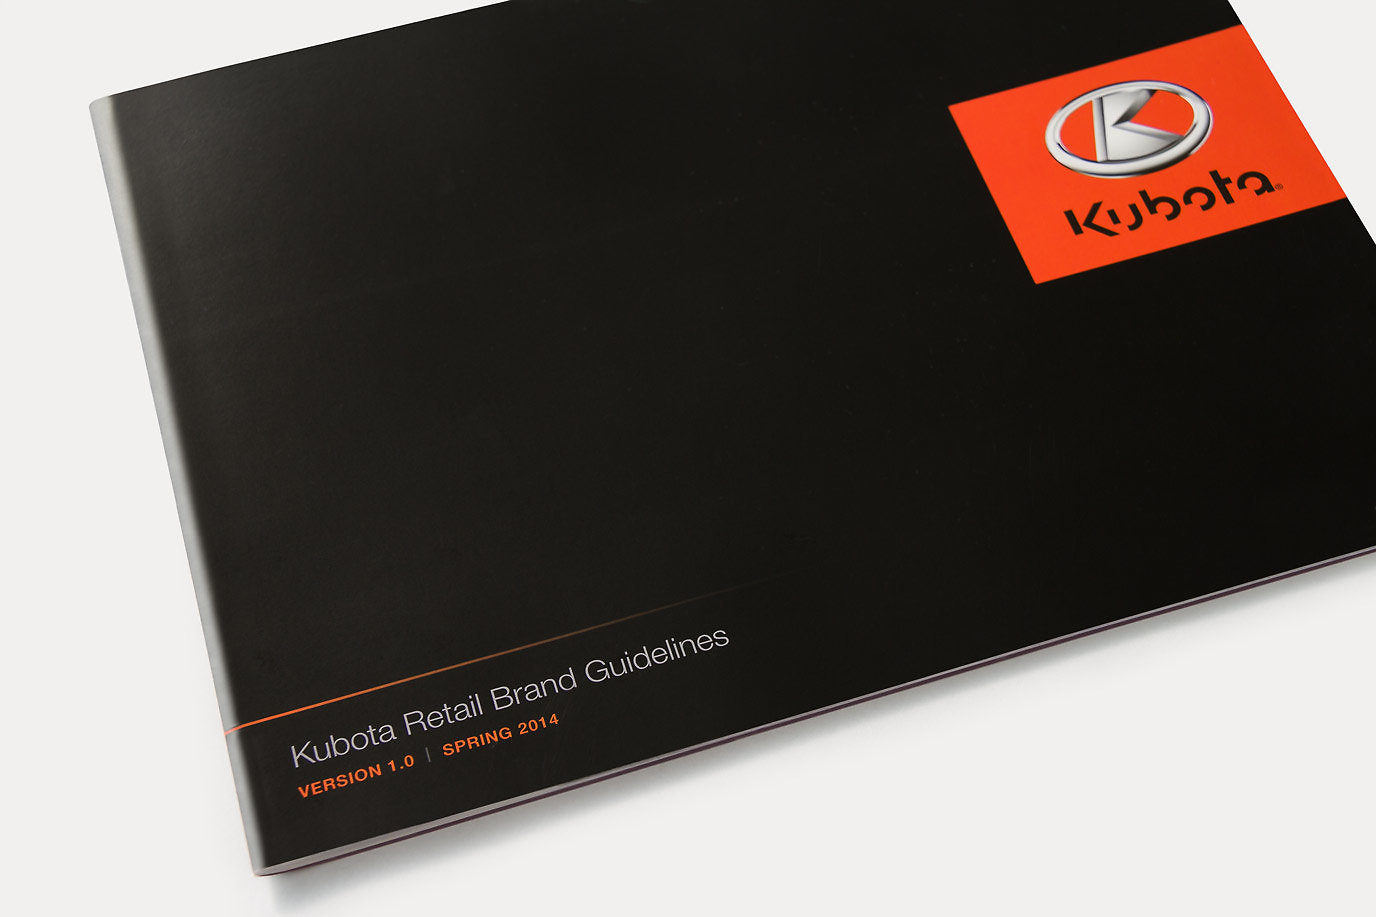 Kubota Retail Brand Guidelines cover